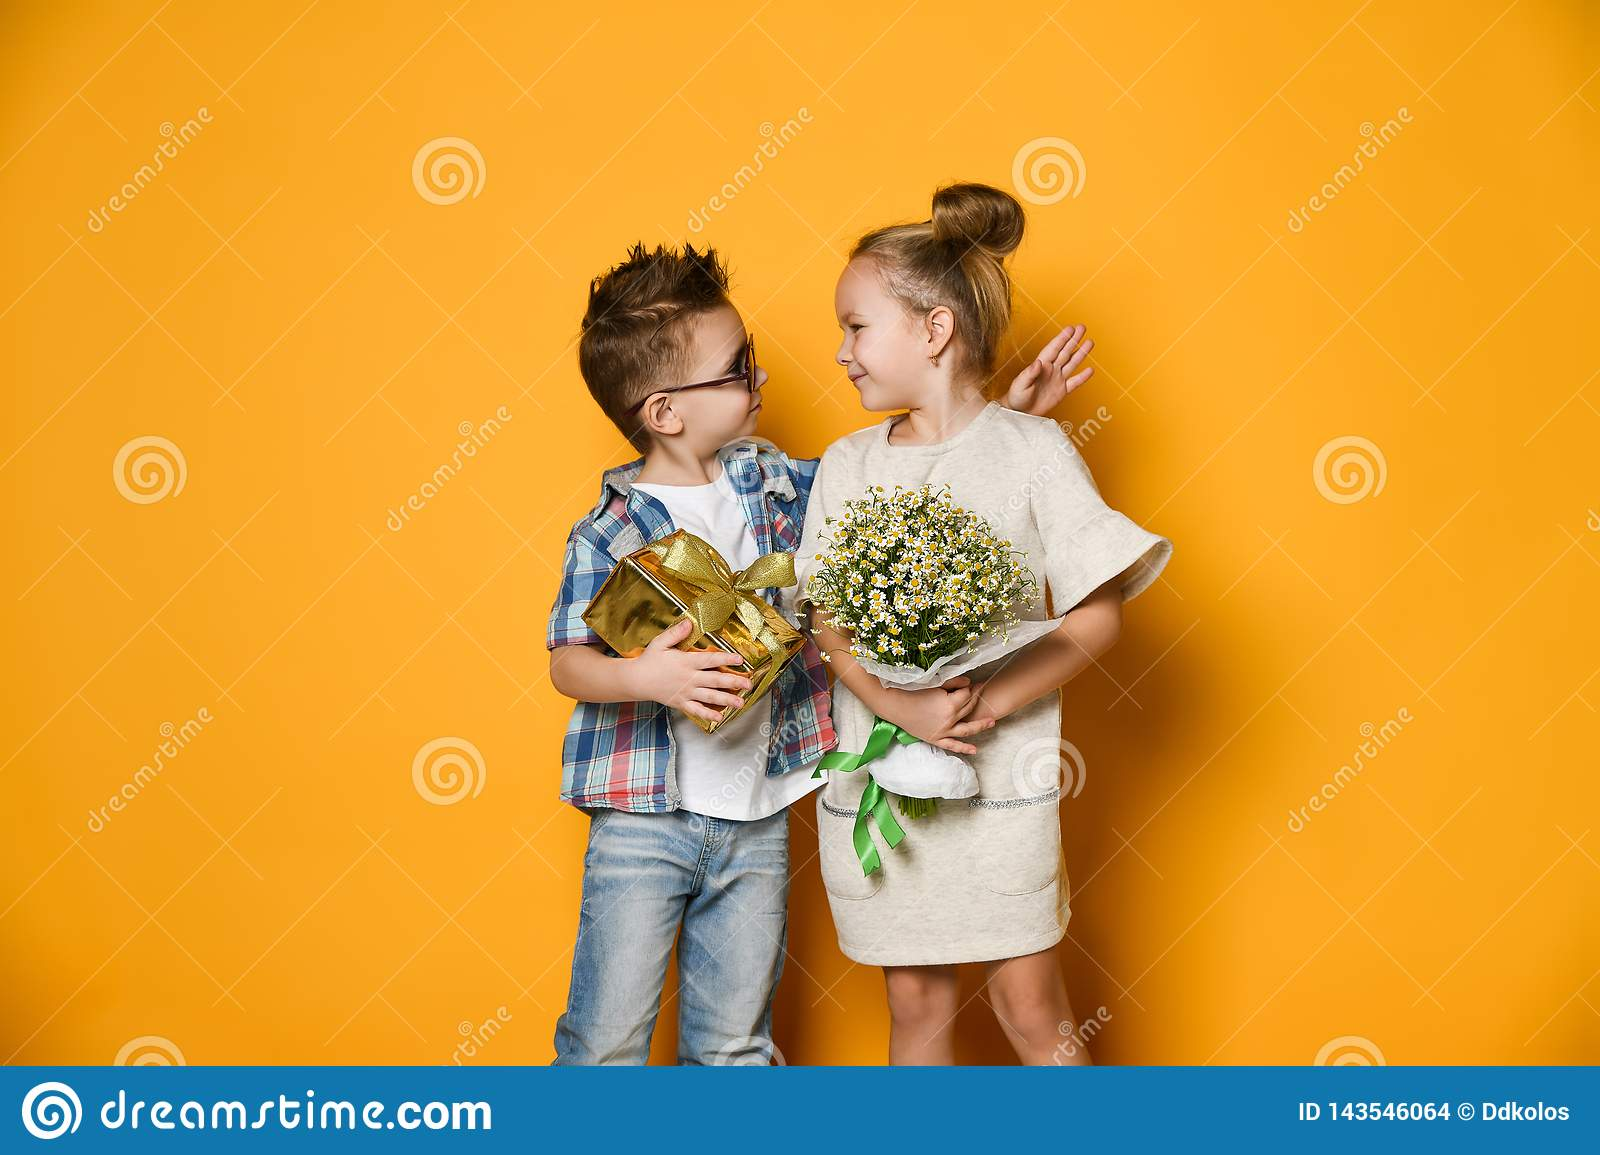 Full length portrait of a smiling man giving a present box to his girlfriend over gray wall